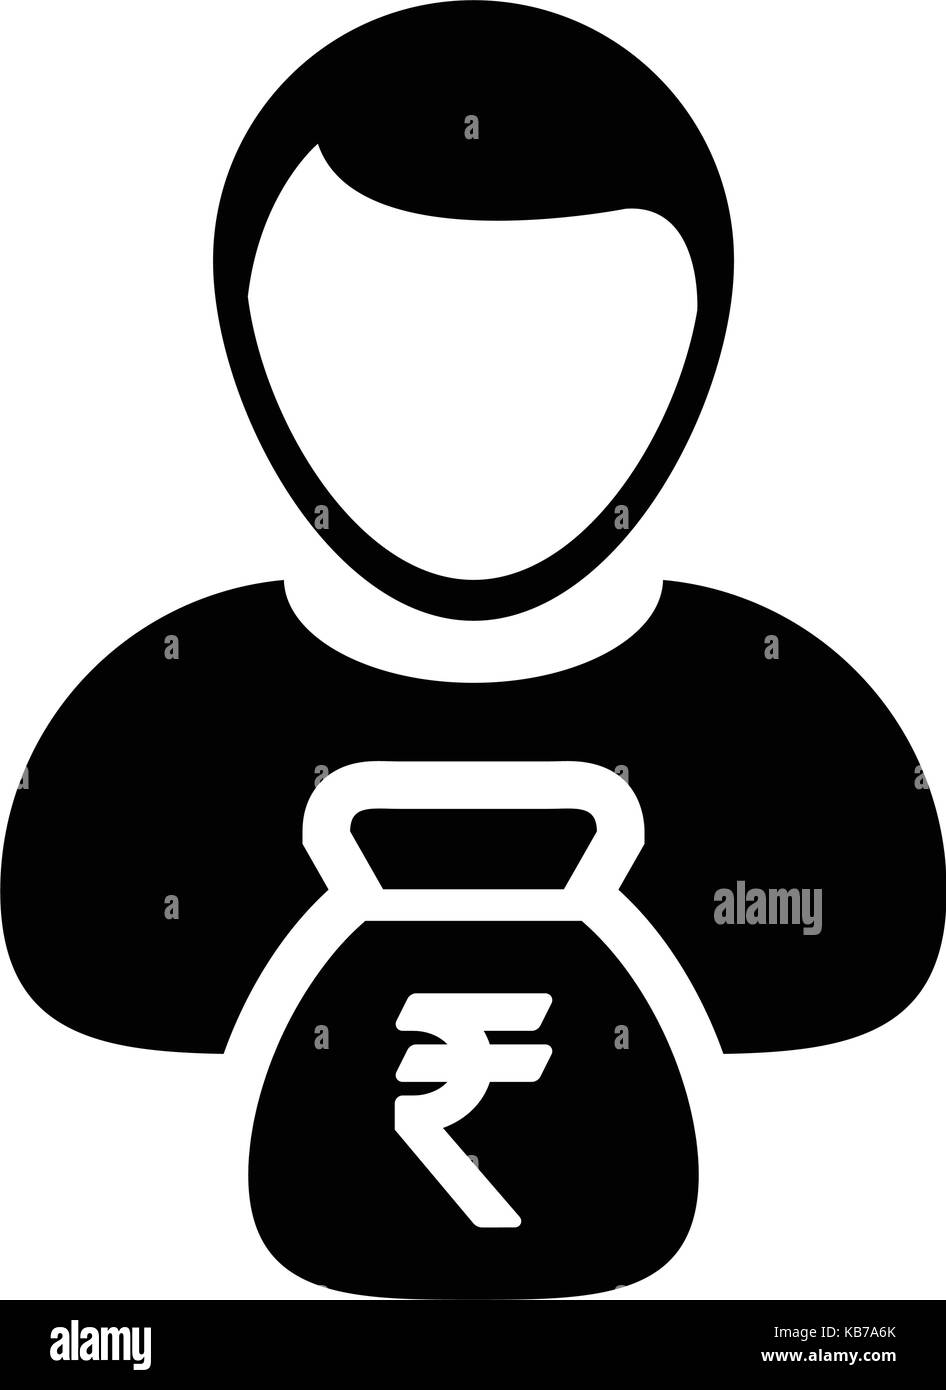 Indian Rupee Black And White Stock Photos Images Alamy